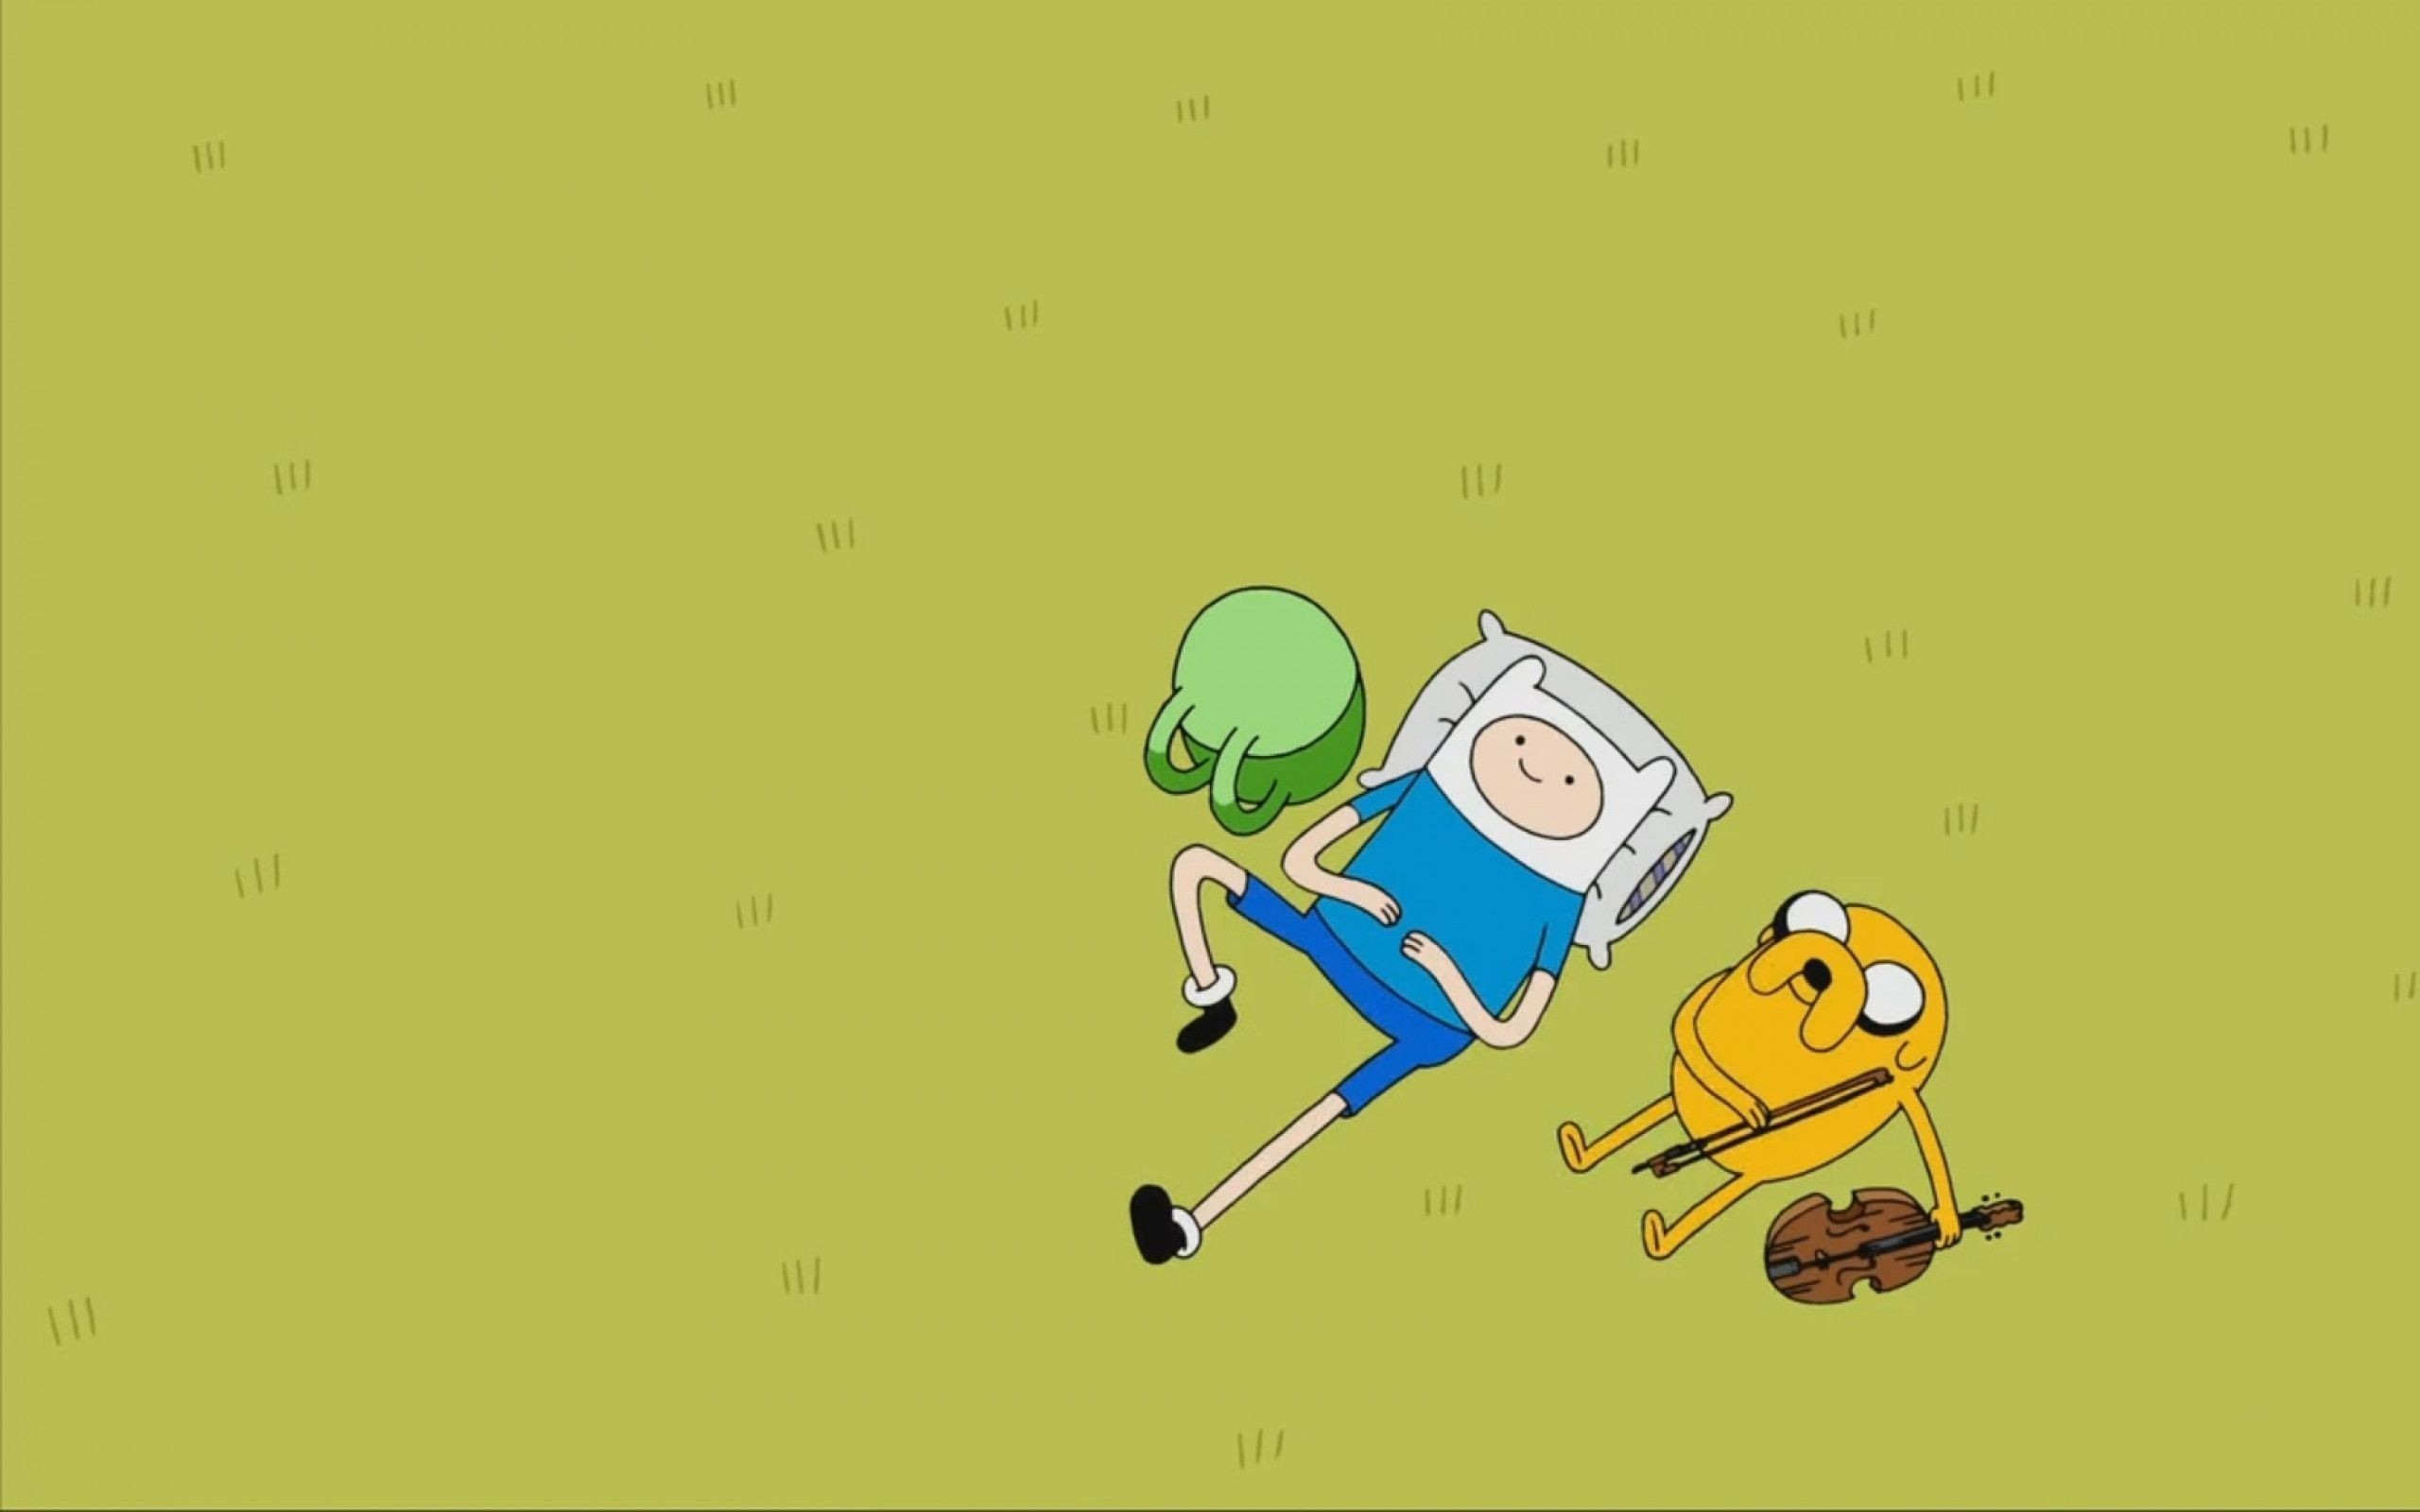 2560x1600 Bmo Wallpapers Hd Lovely Adventure Time Wallpapers Hd Wallpaper